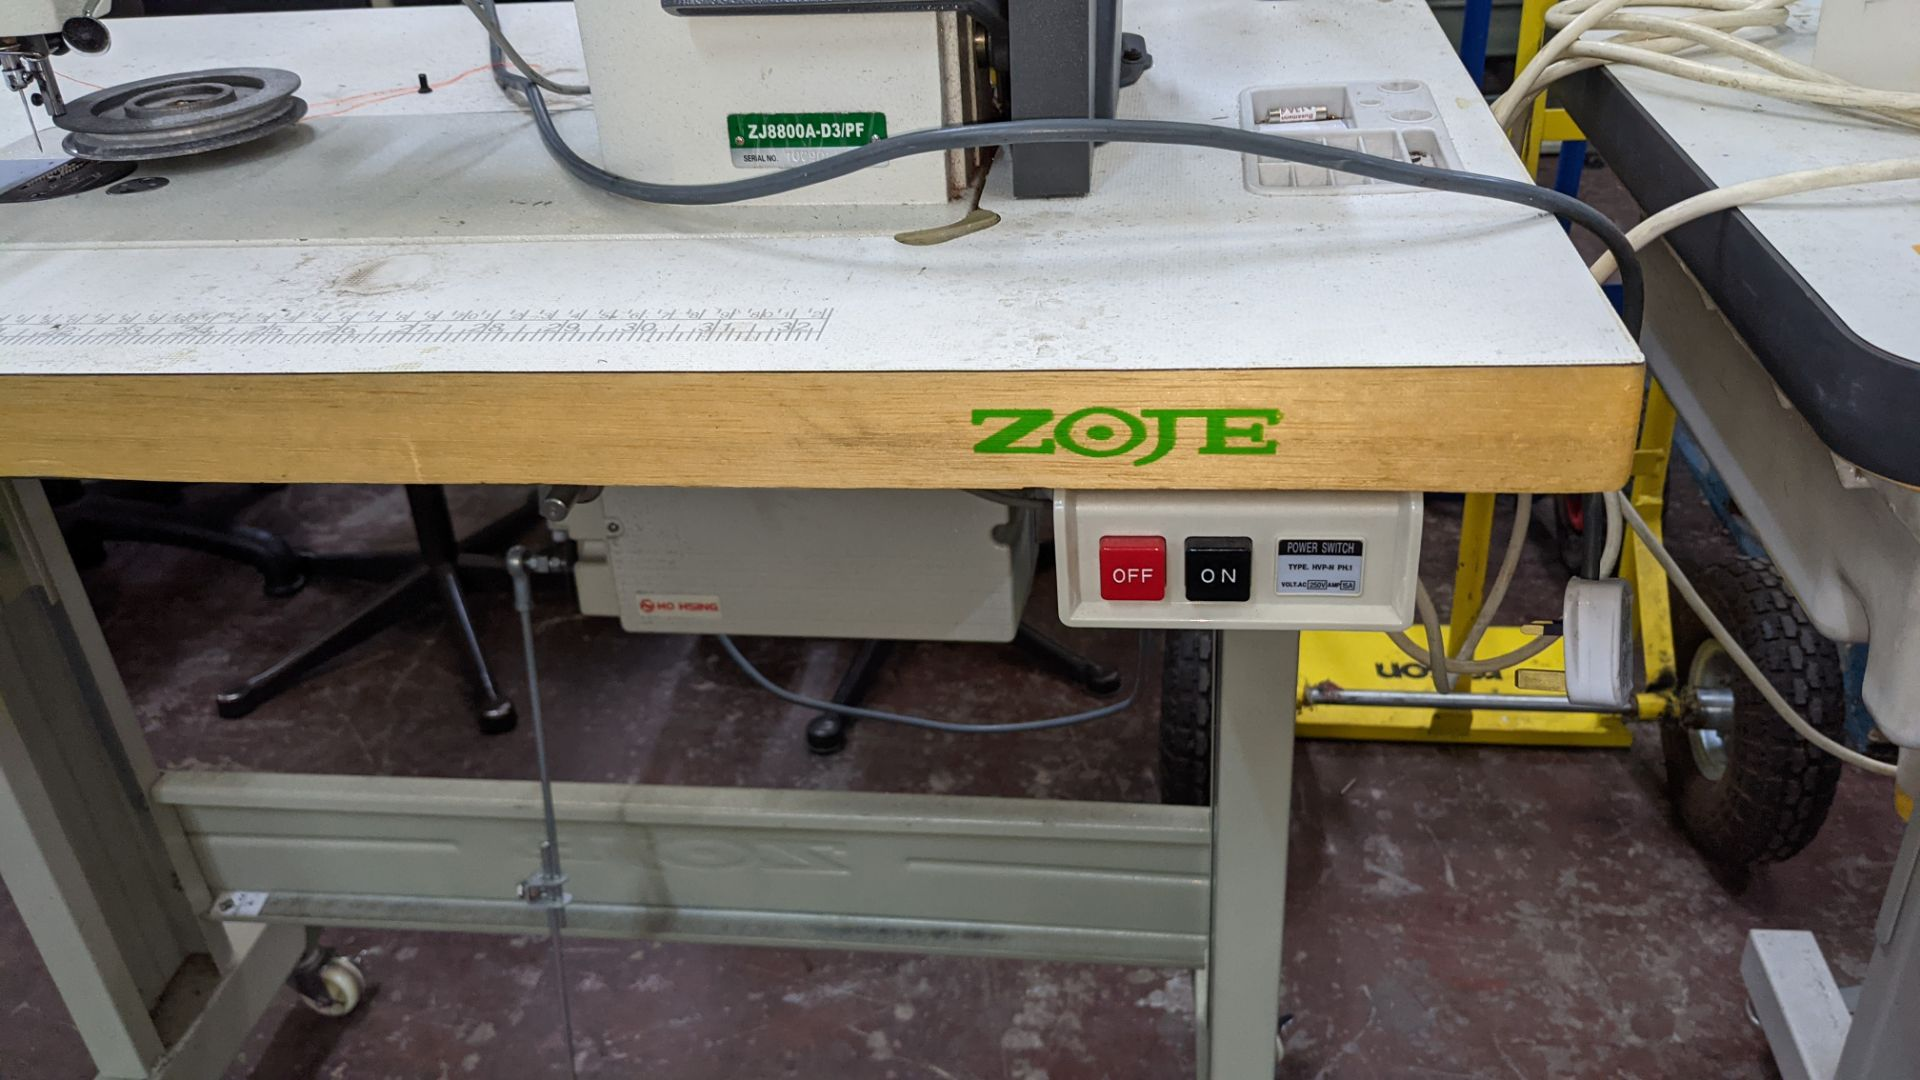 Zoje model ZJ8800A-D3B/PF sewing machine with C-200 controller - Image 14 of 16